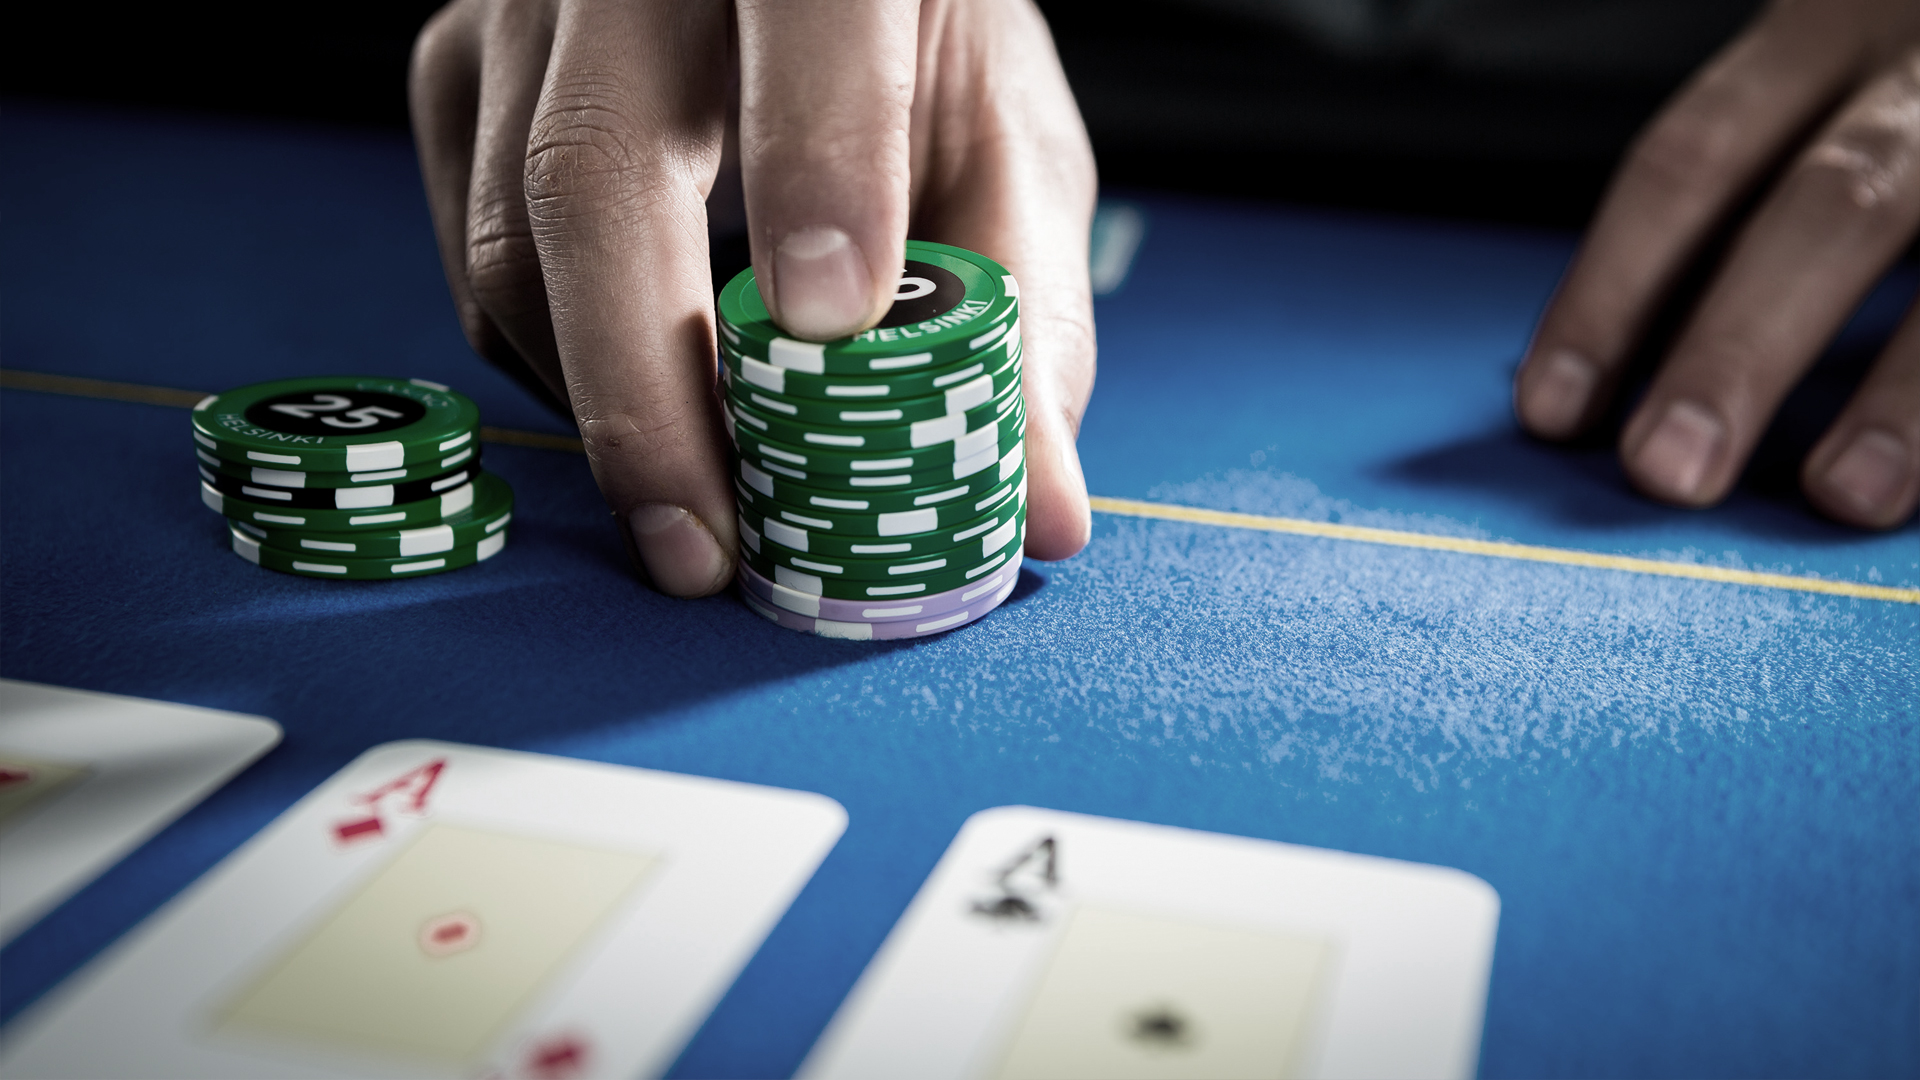 The holistic view of online gambling source